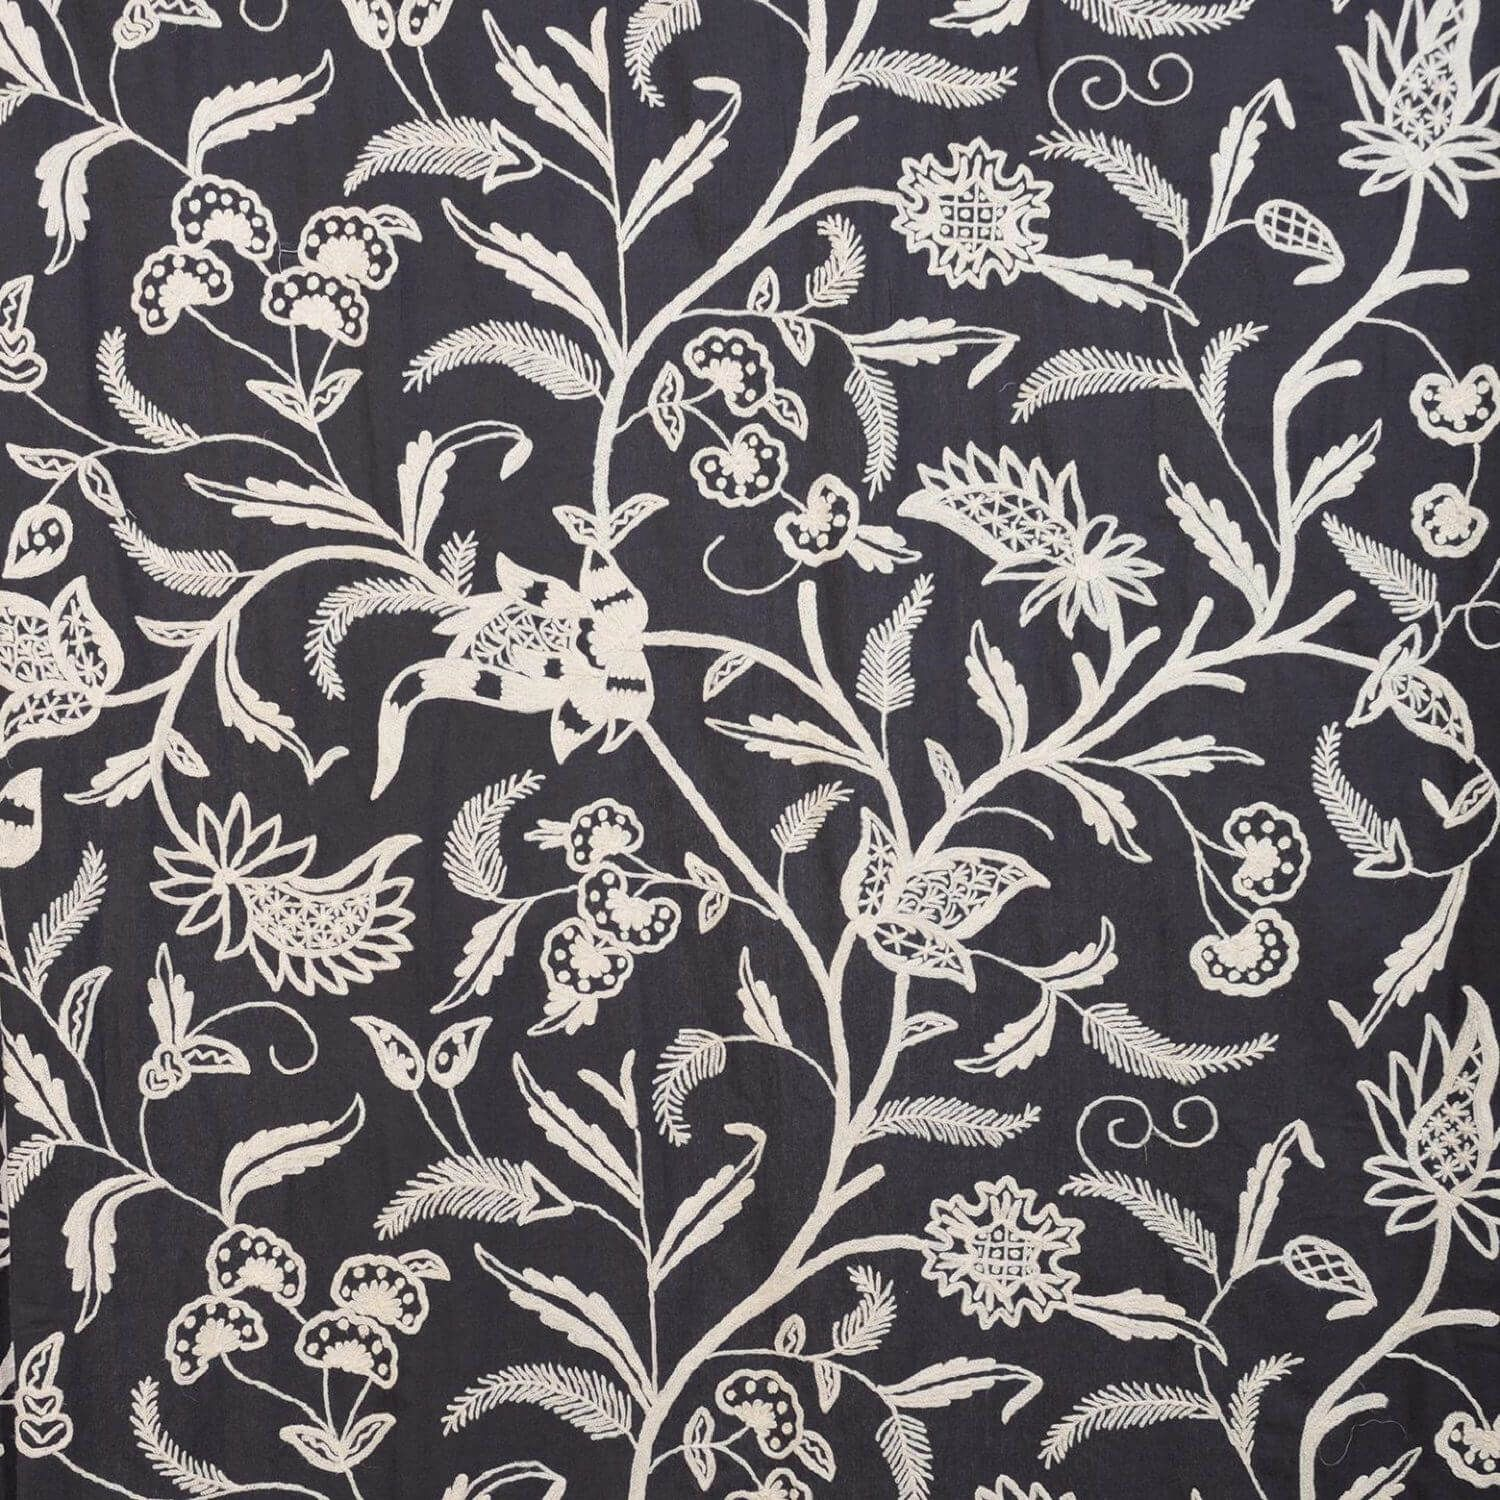 Pin by Julie Fussell on Bedroom redo Embroidered, Swatch